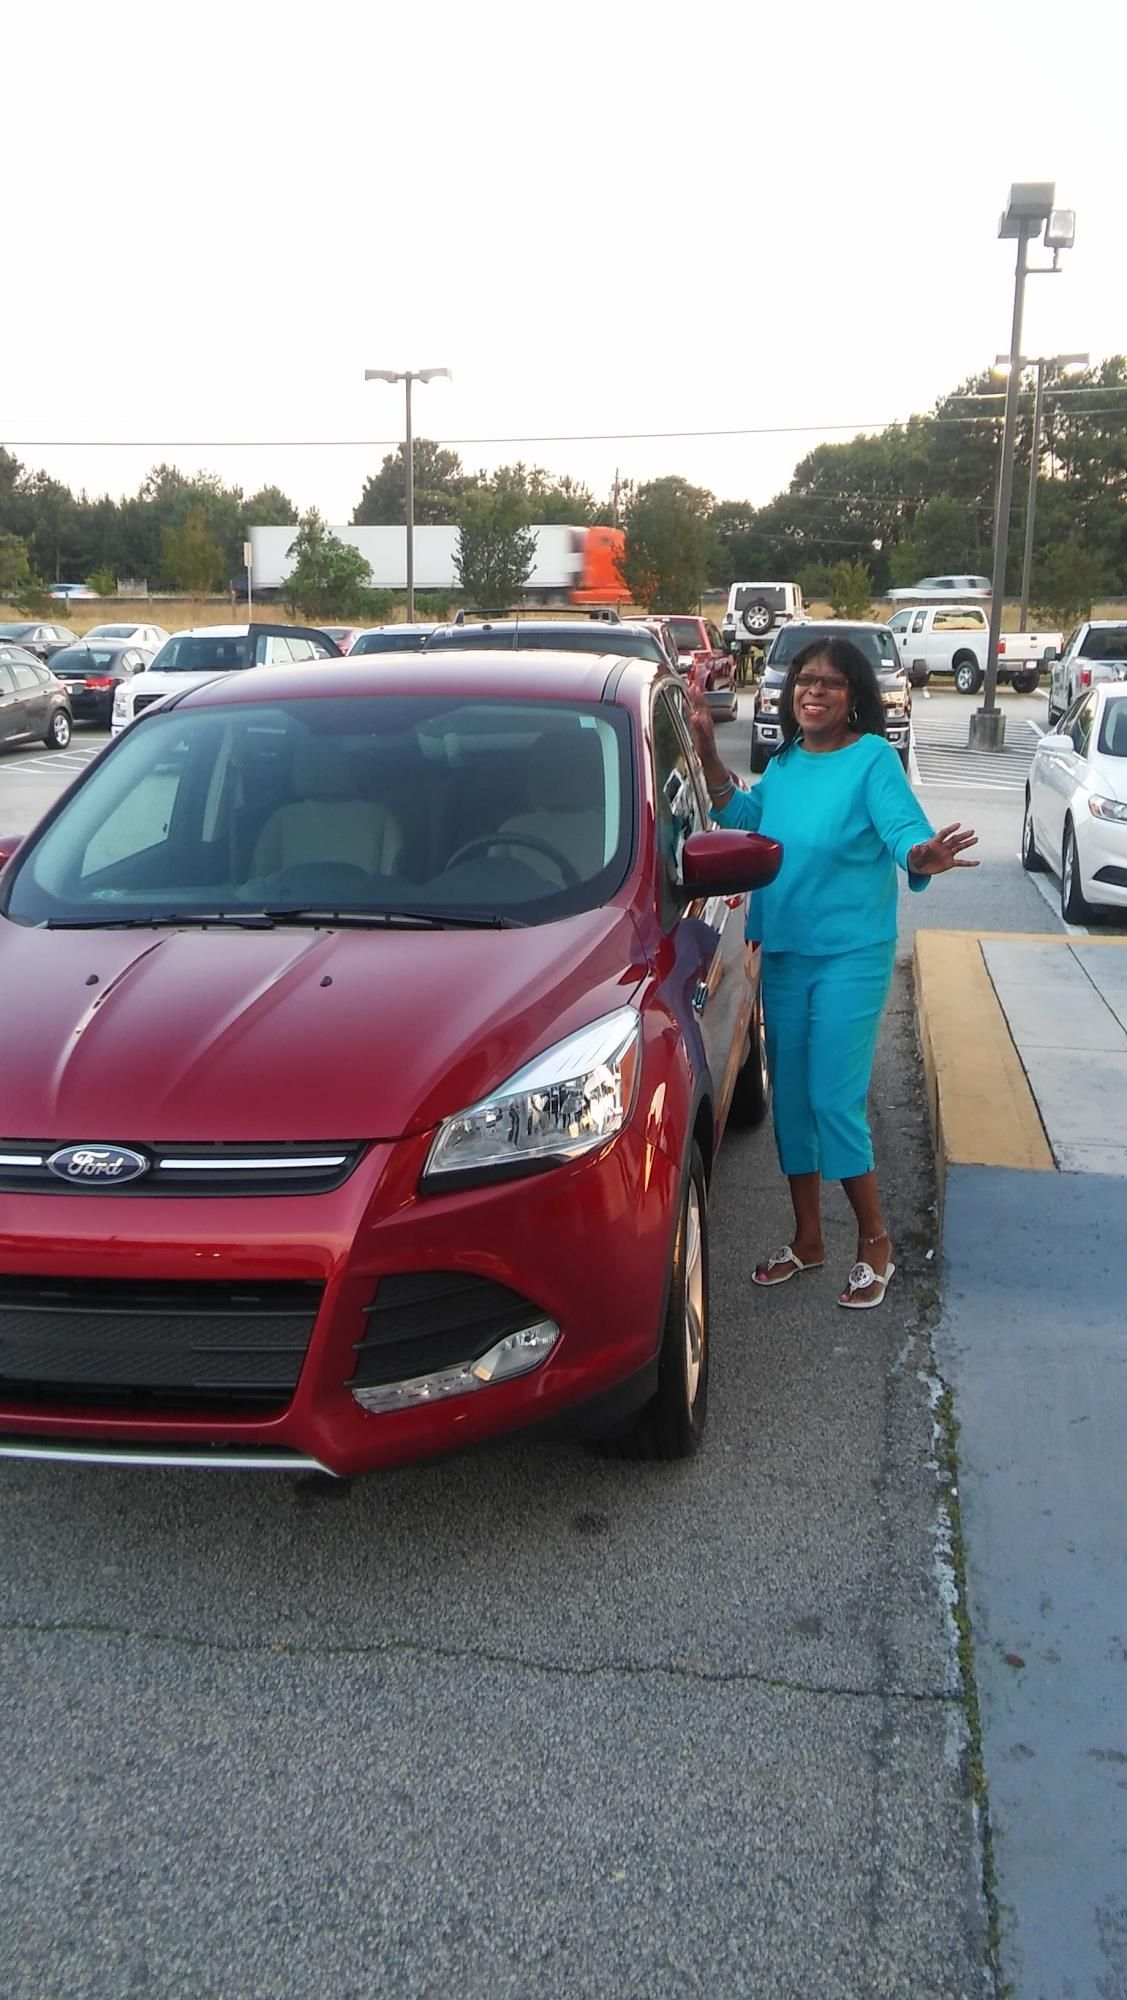 Ruth Banks reviews the 2016 Ford Escape she purchased from Courtesy